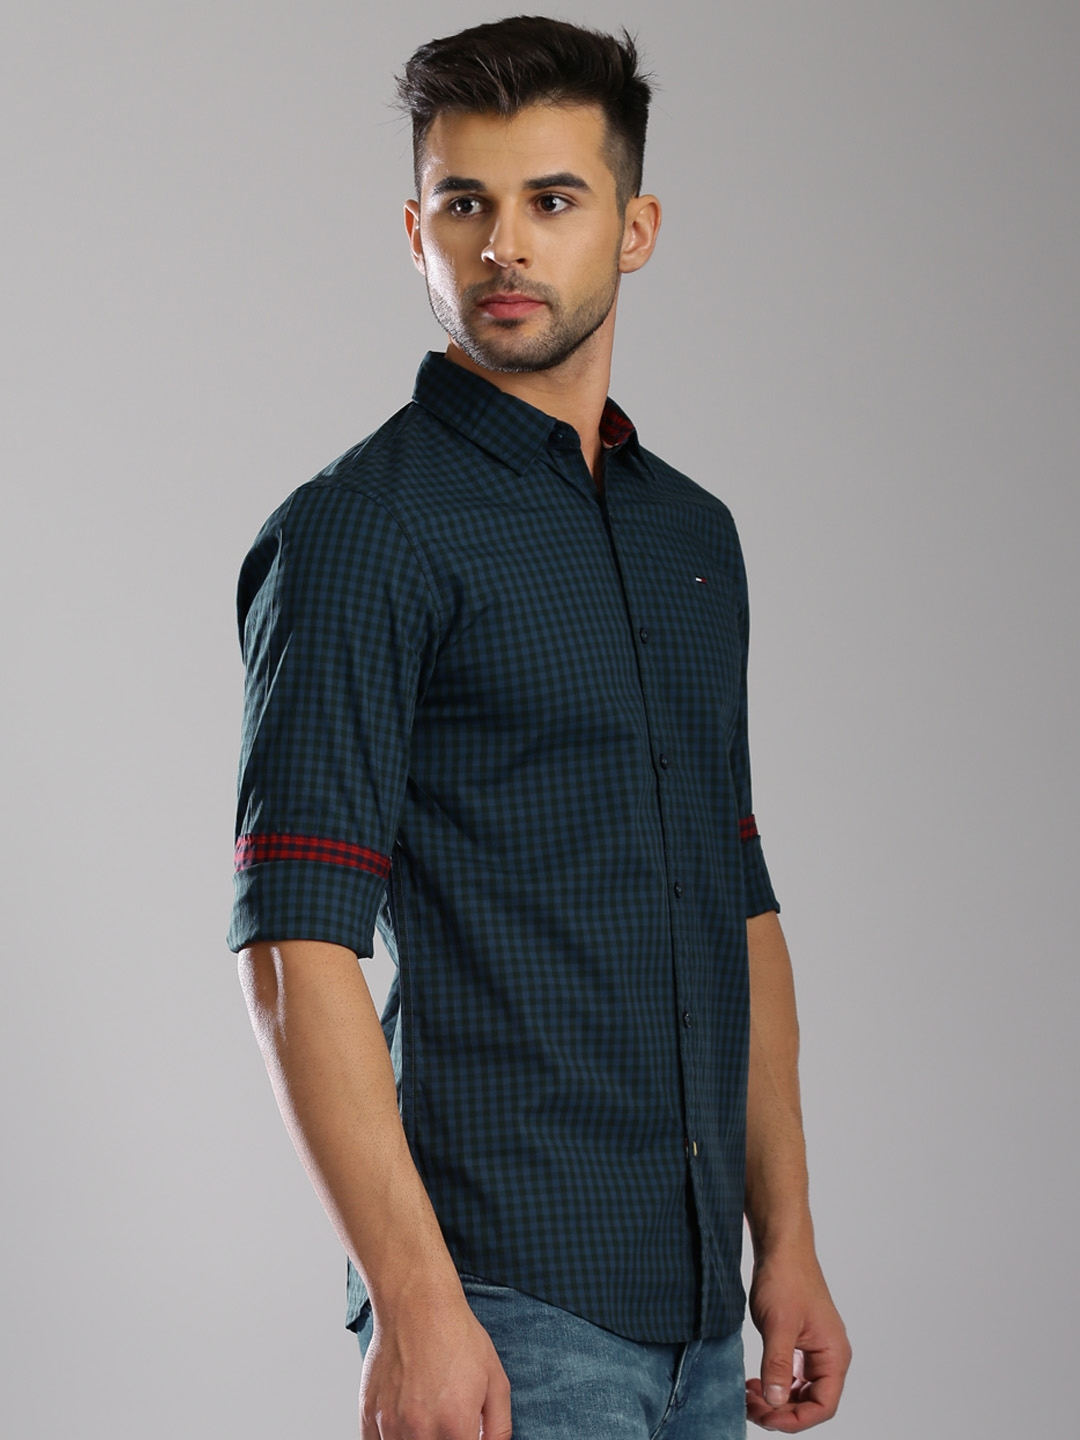 d3f02669 Buy Tommy Hilfiger Blue & Green Checked Slim Casual Shirt - Shirts ...